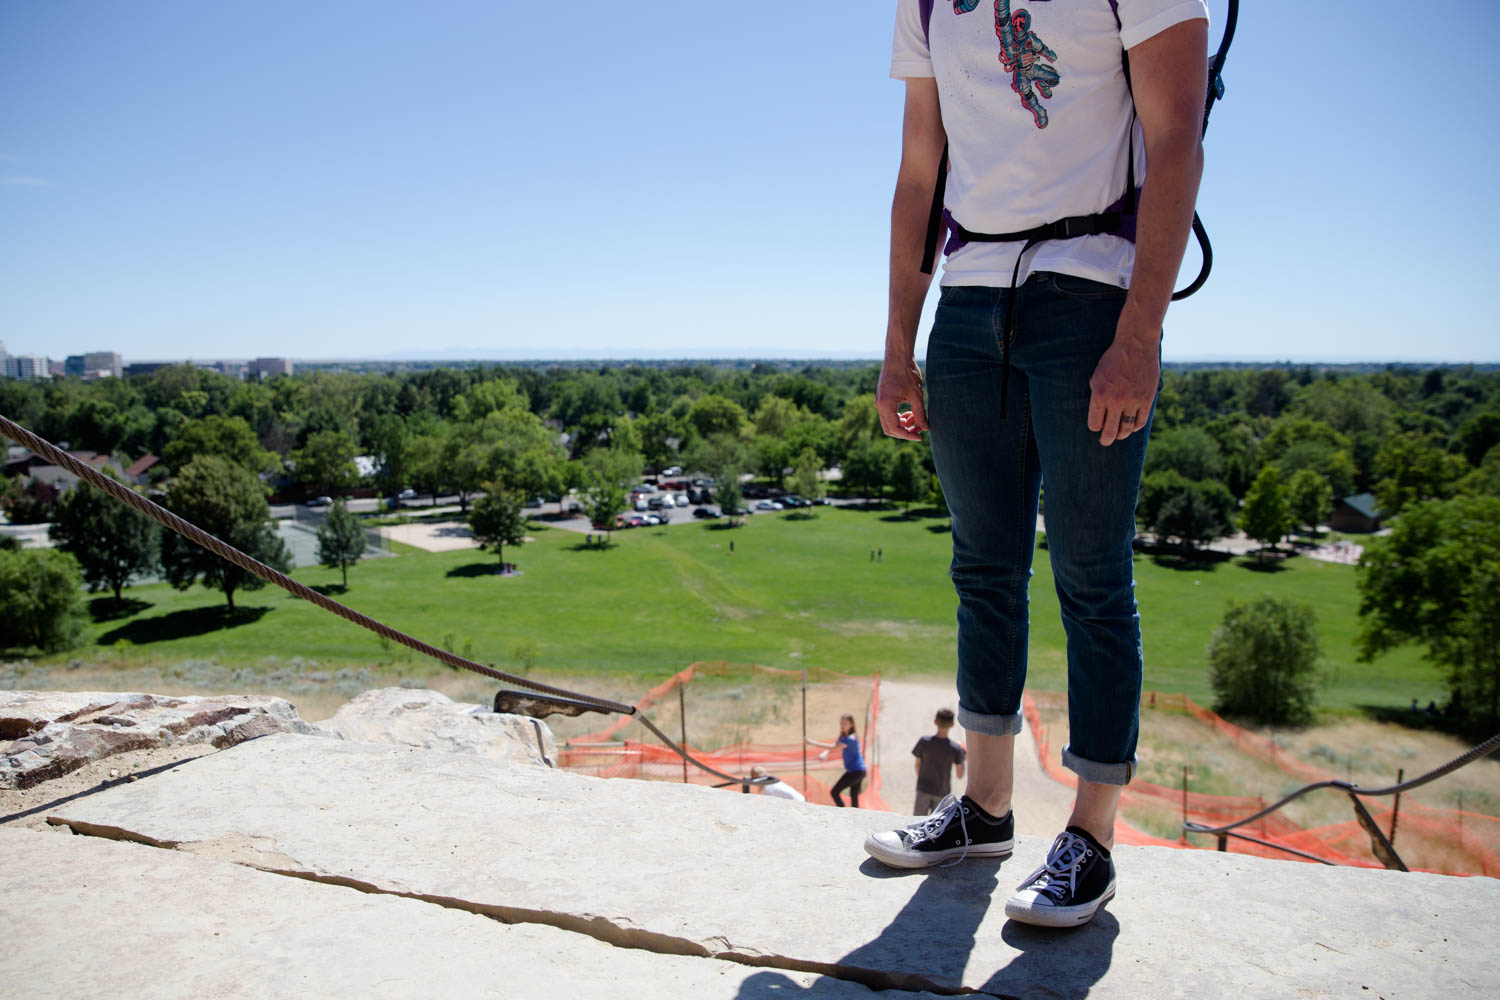 Dad standing at the top of the stairs at Camelsback Park in Boise ID. Converse shoes and short jeans carrying a kid on his backpack with hands down. Relaxed. Overlooking city.